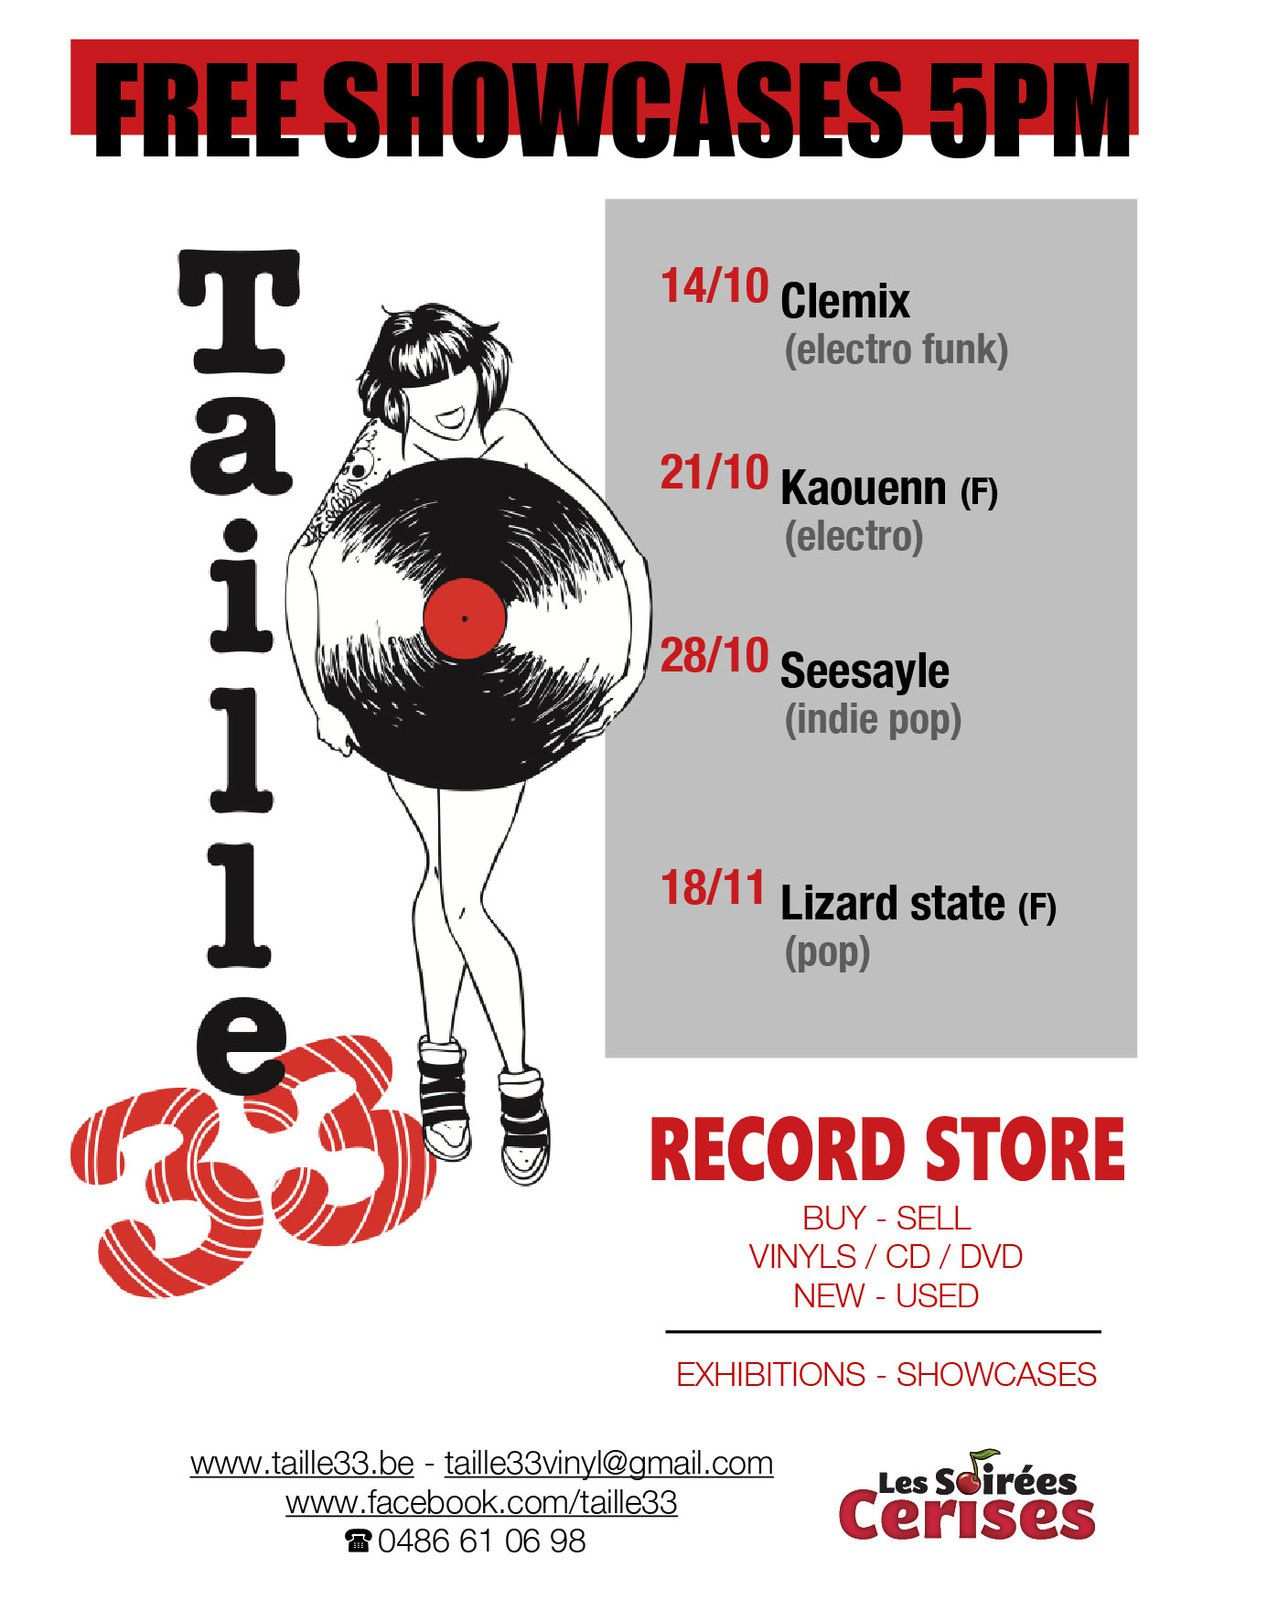 ▶ Prochains showcases au Taille33 record store